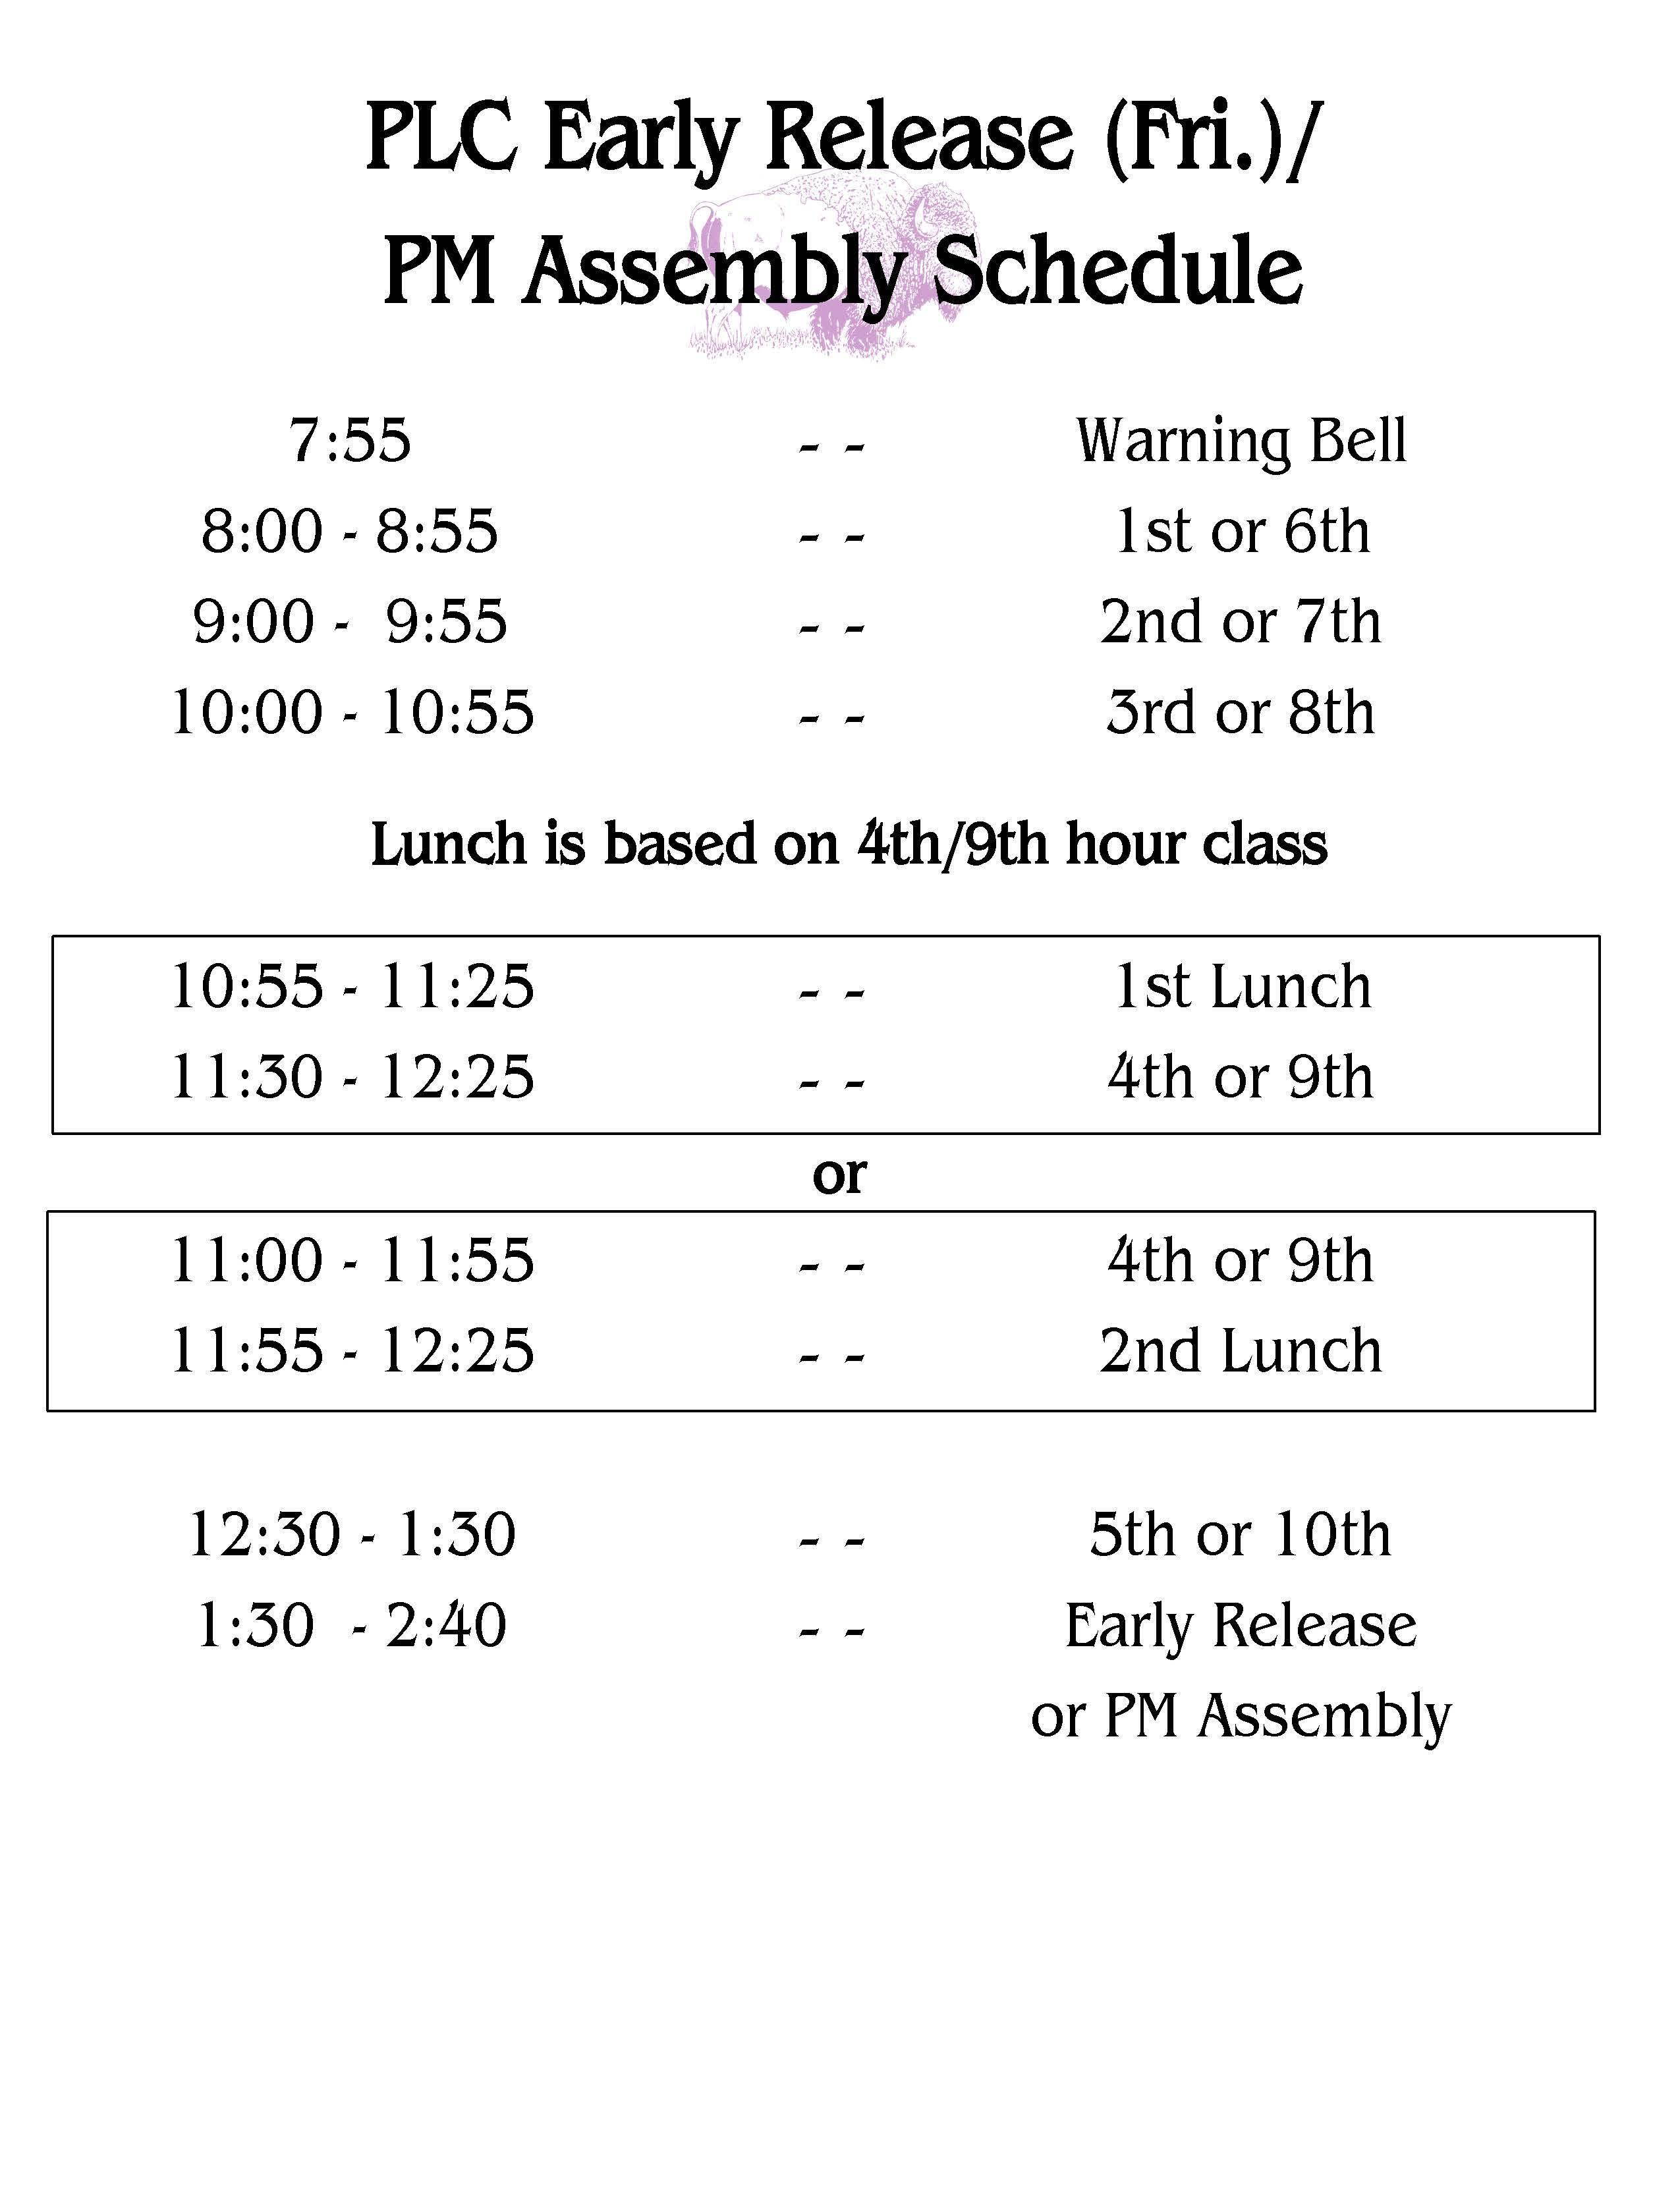 Friday Schedule (Same as AM assembly Mon-Thurs)